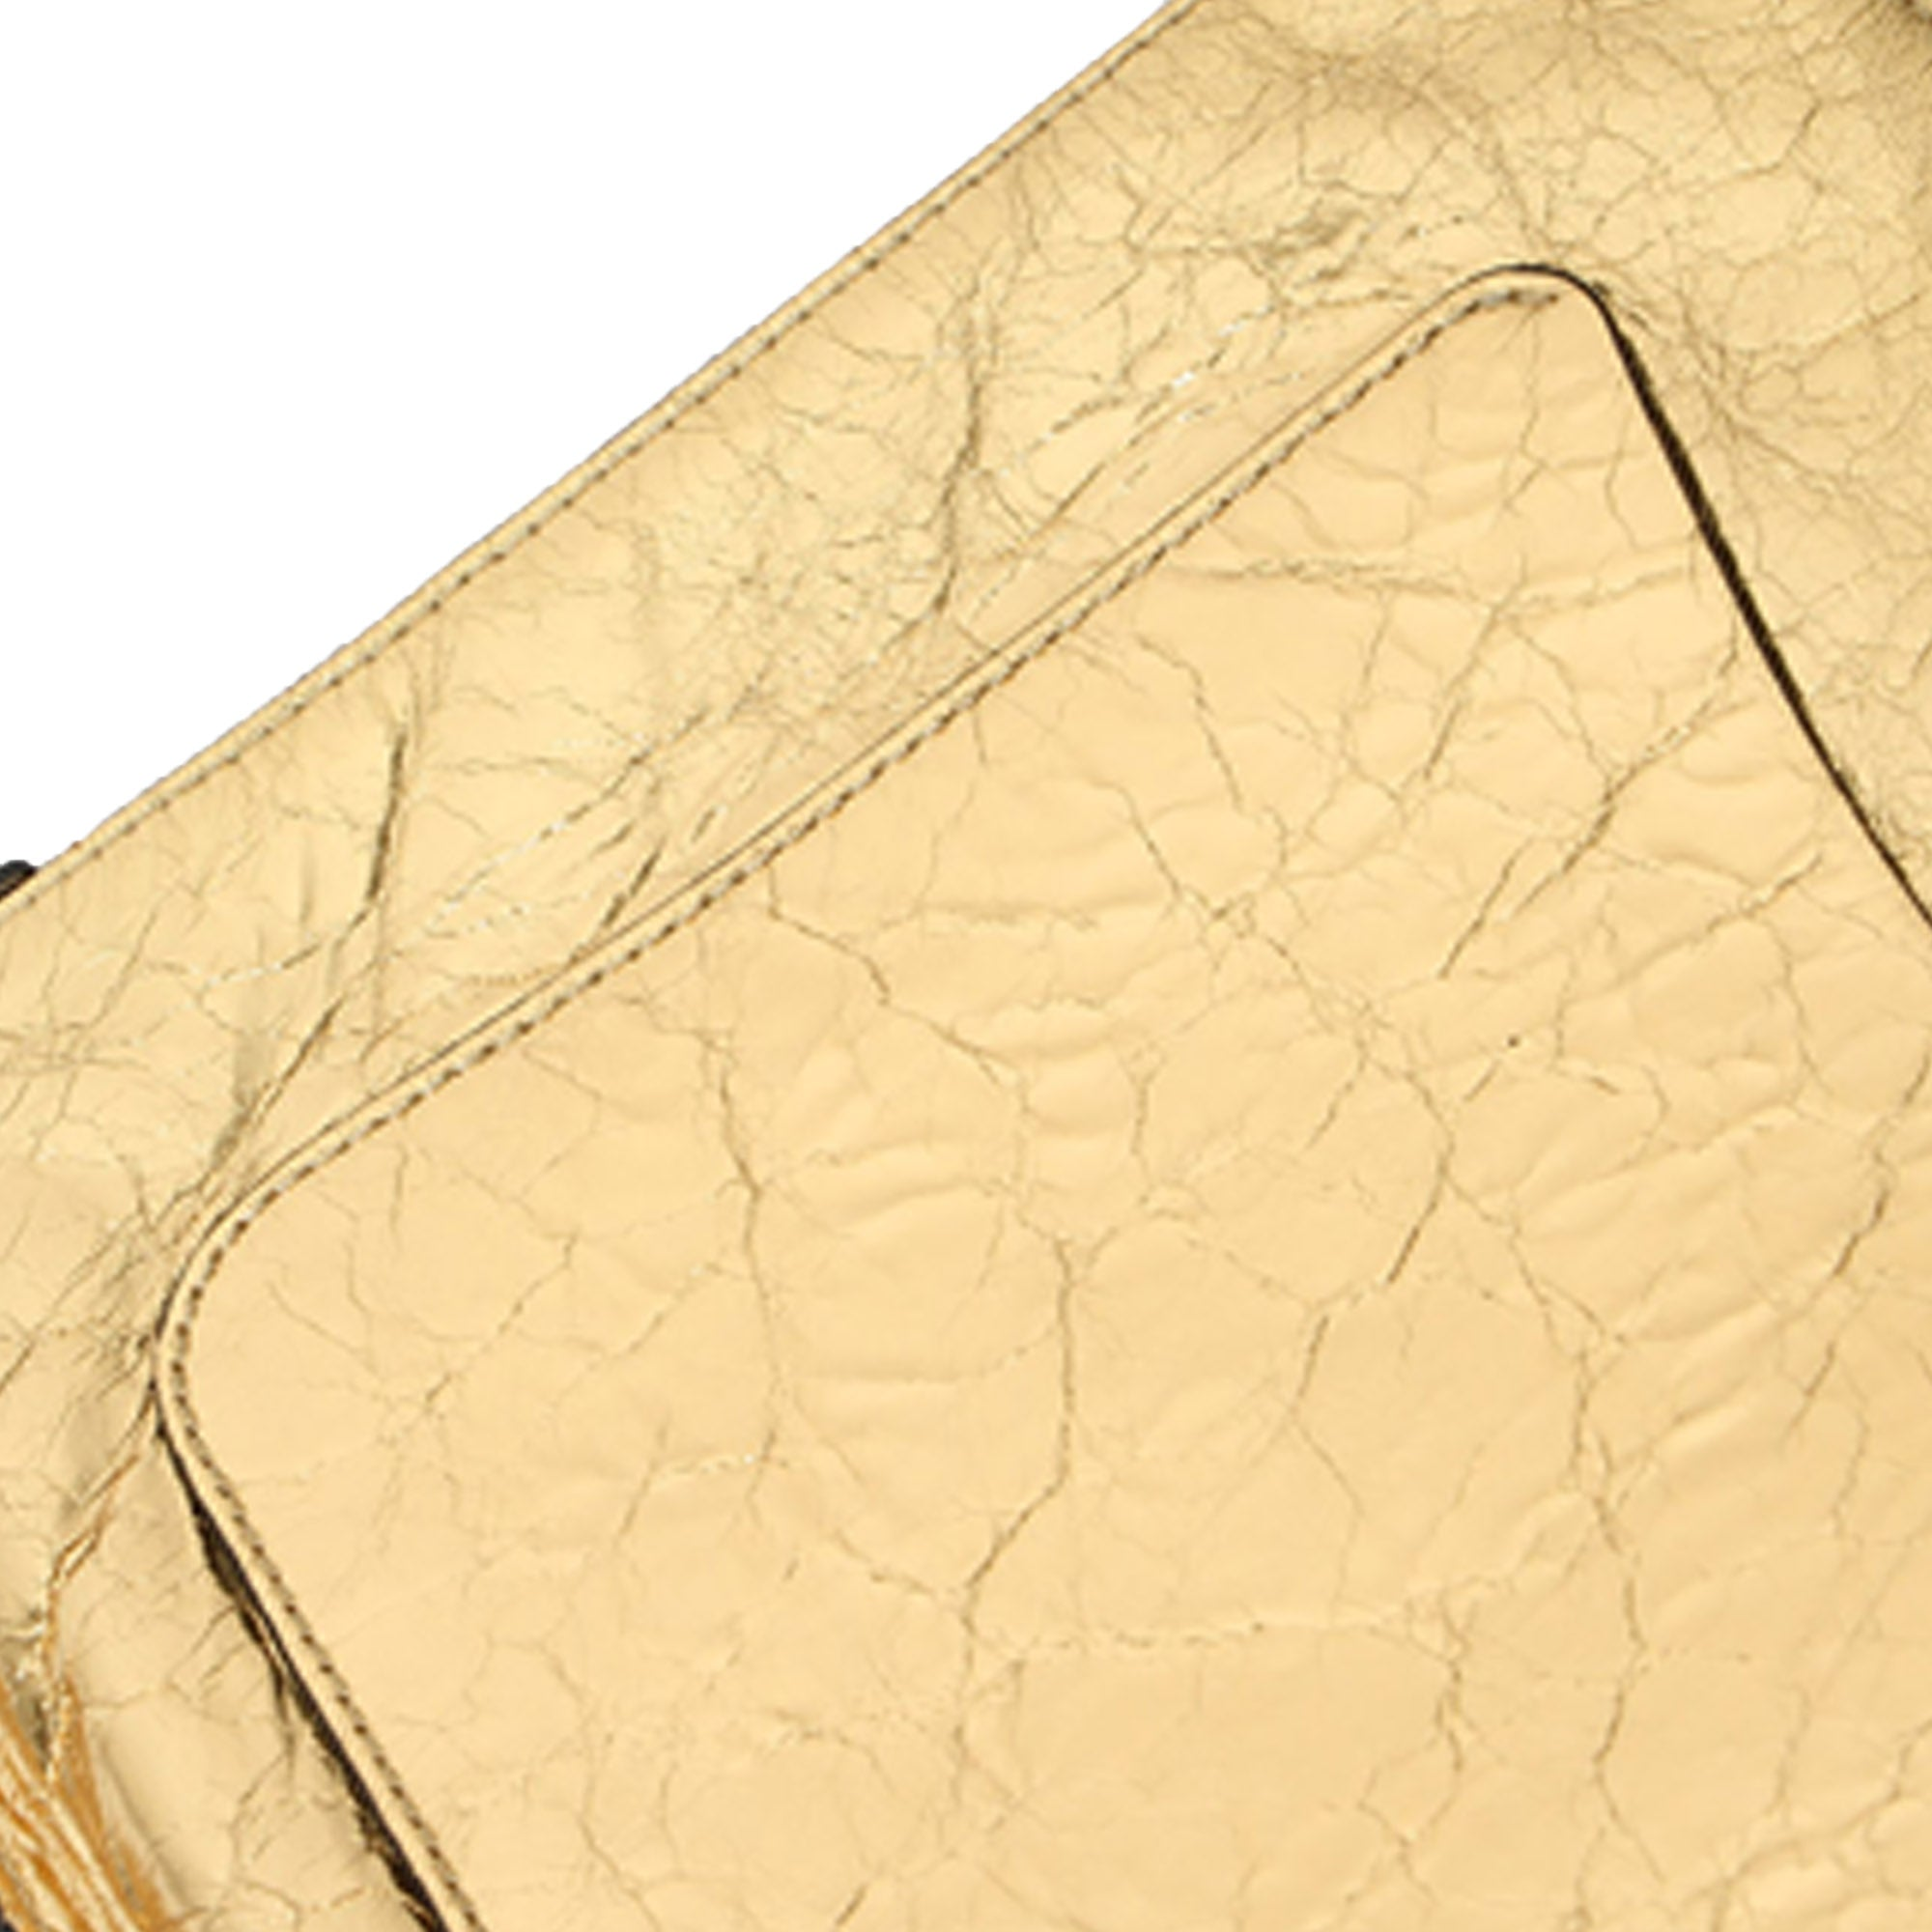 Chanel Gold Je Ne Suis Pas En Solde Clutch Bag